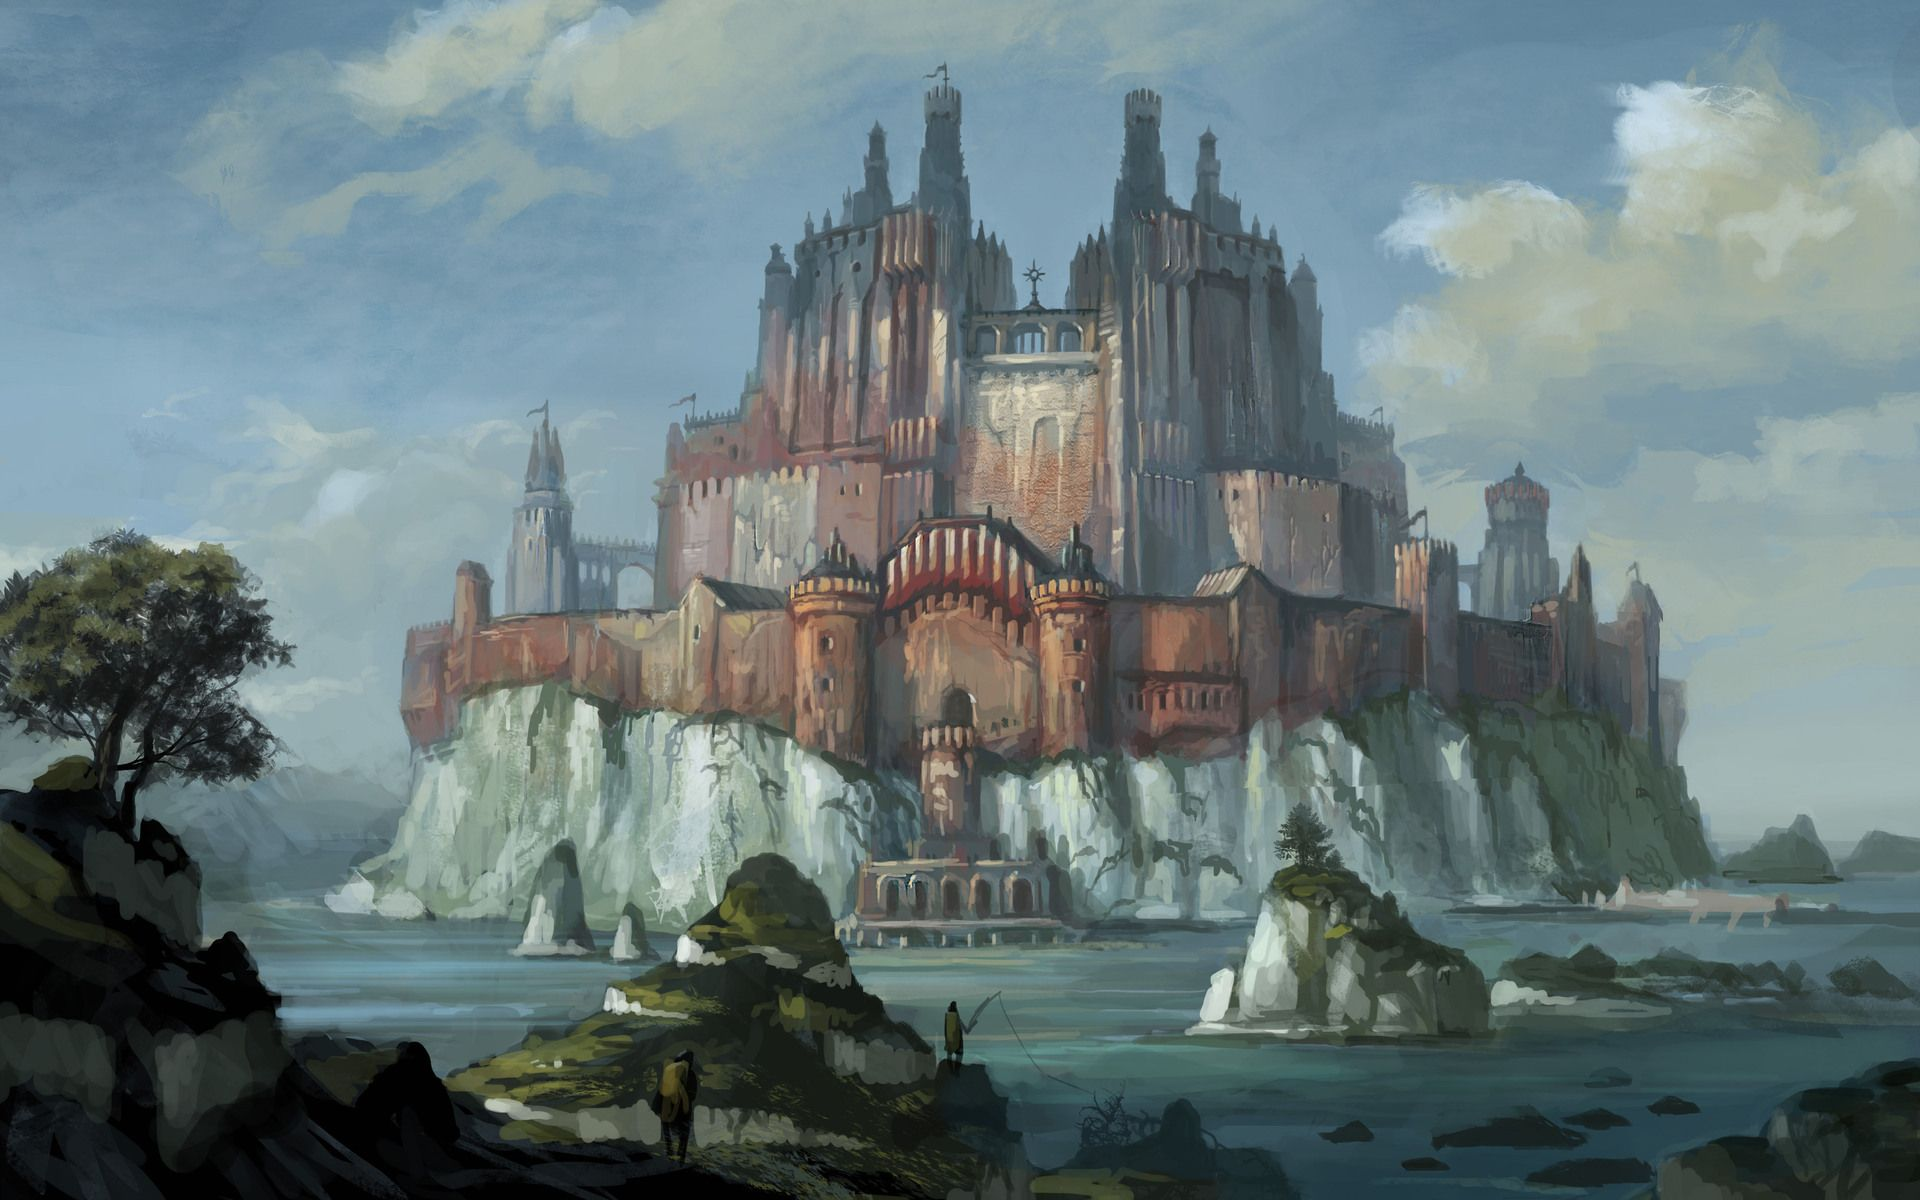 Fantasy Castles Fantasy Castle WallpaperBackground 1920 x 1200 1920x1200